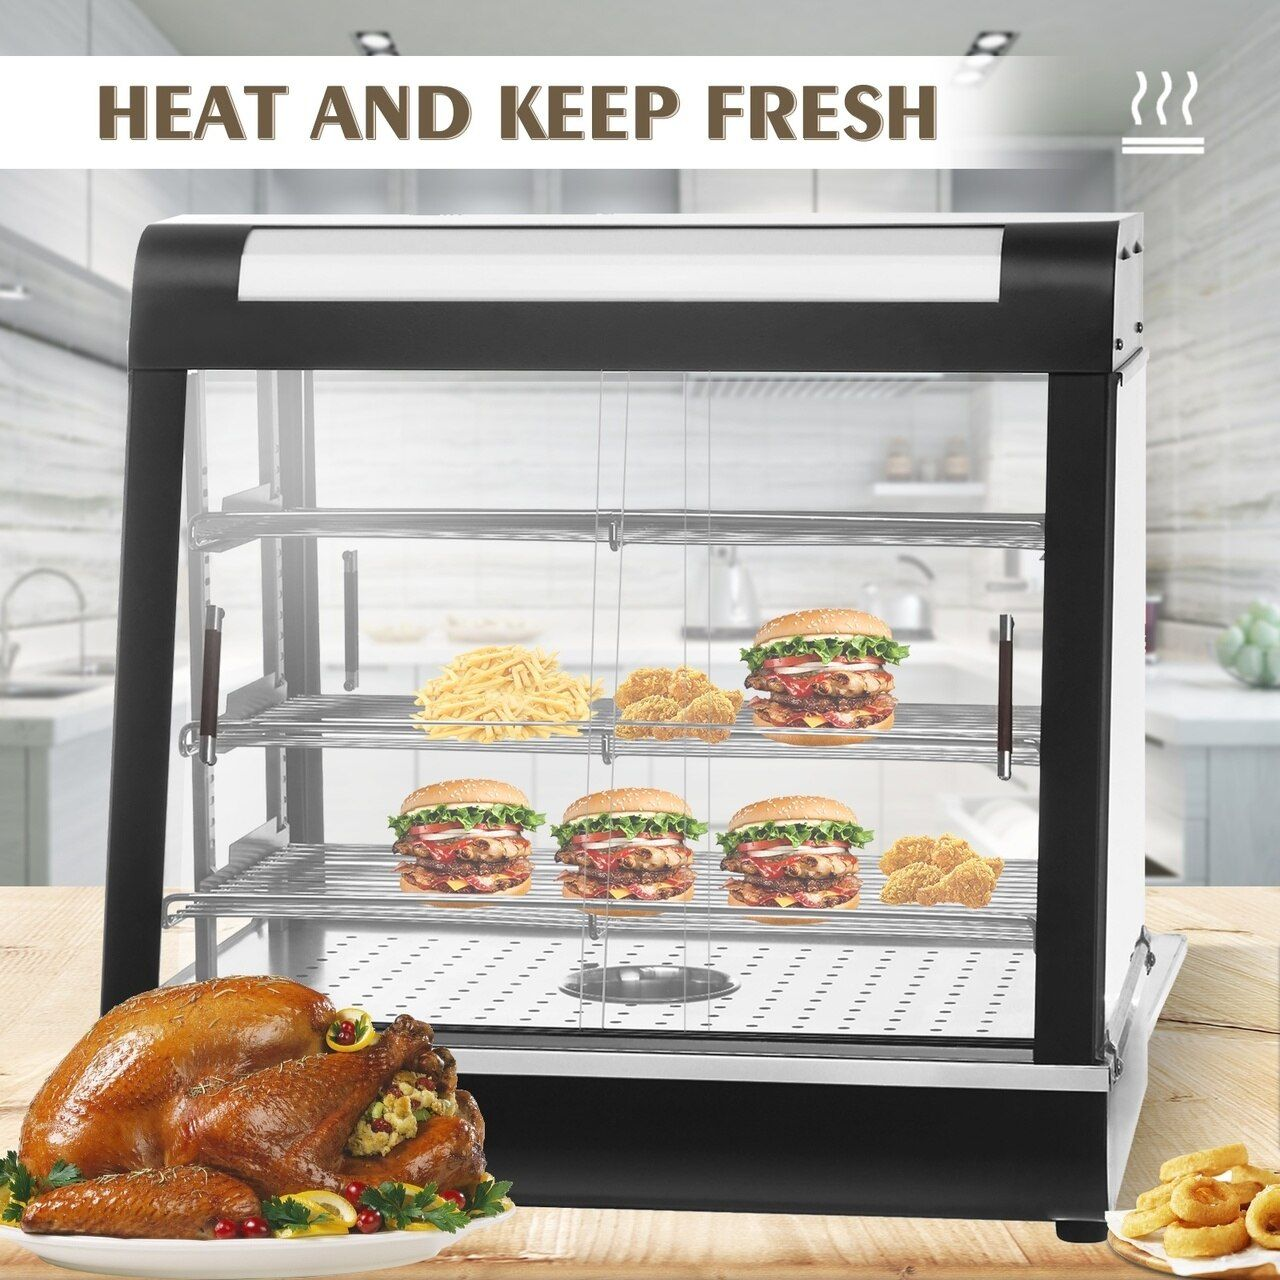 26 Commercial Countertop Hot Food Warmer Display Case For Restaurant Heated Cabinet Pizza Empanda Pastry Patty Hot Meals Food Warmer Display Food Warmers